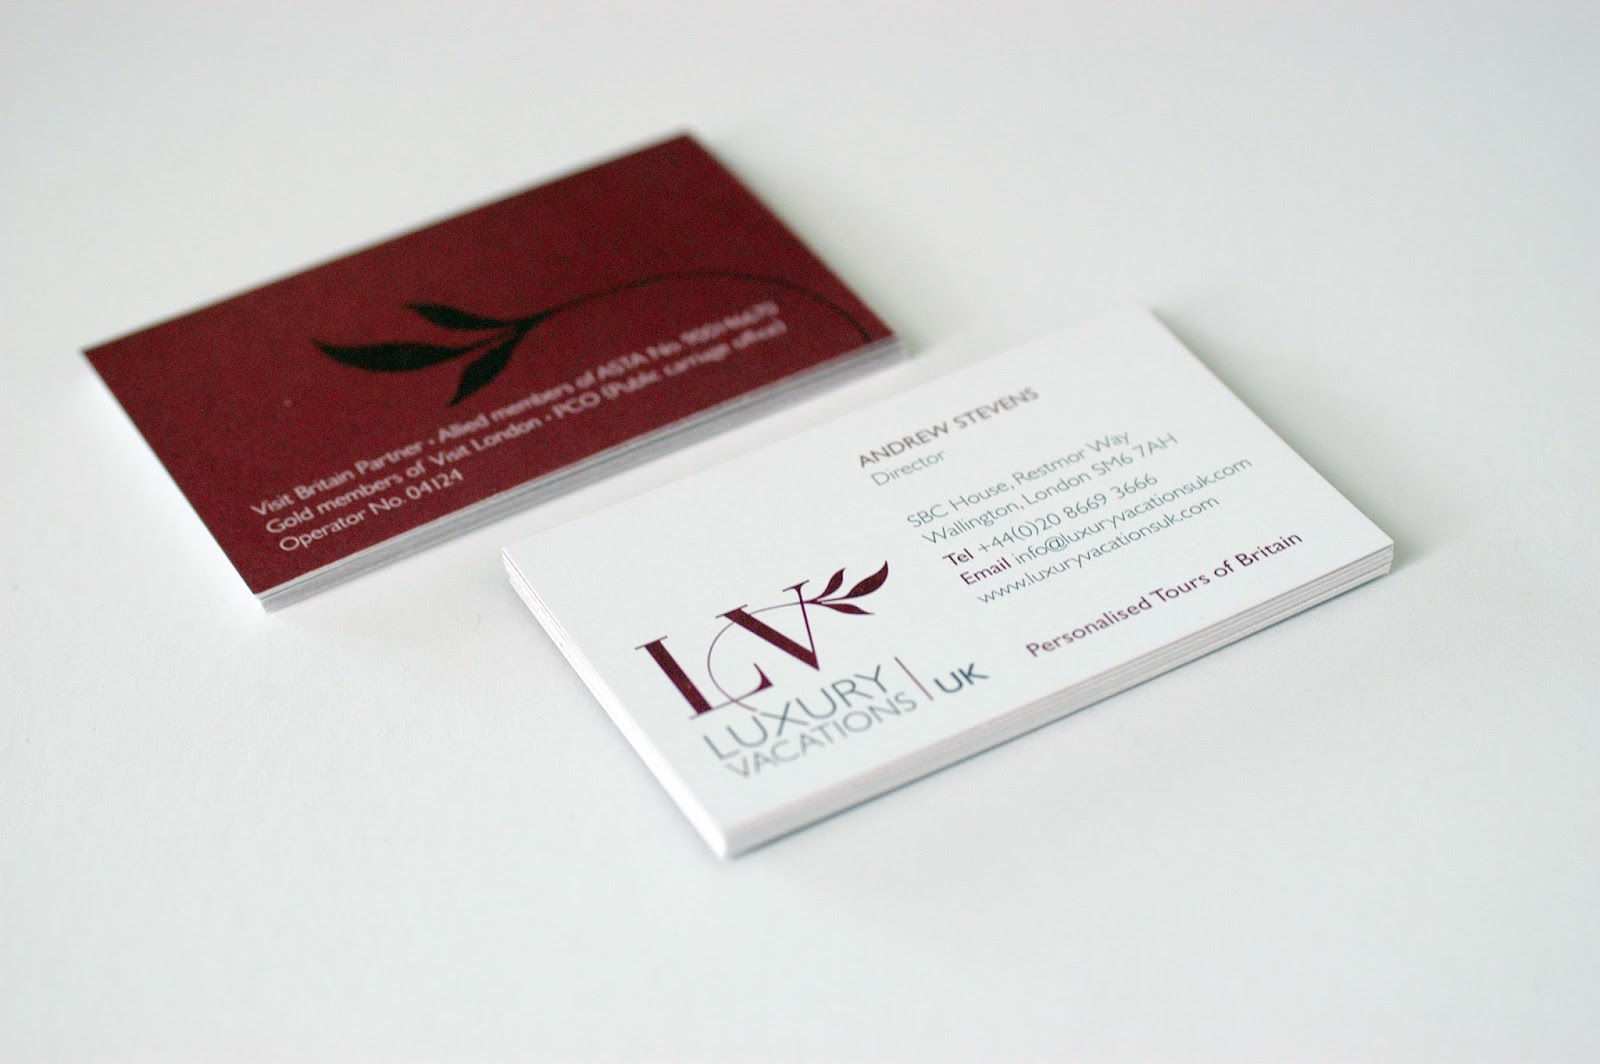 Business Cards Design Ideas business cards design ideas Business Card Design Ideas